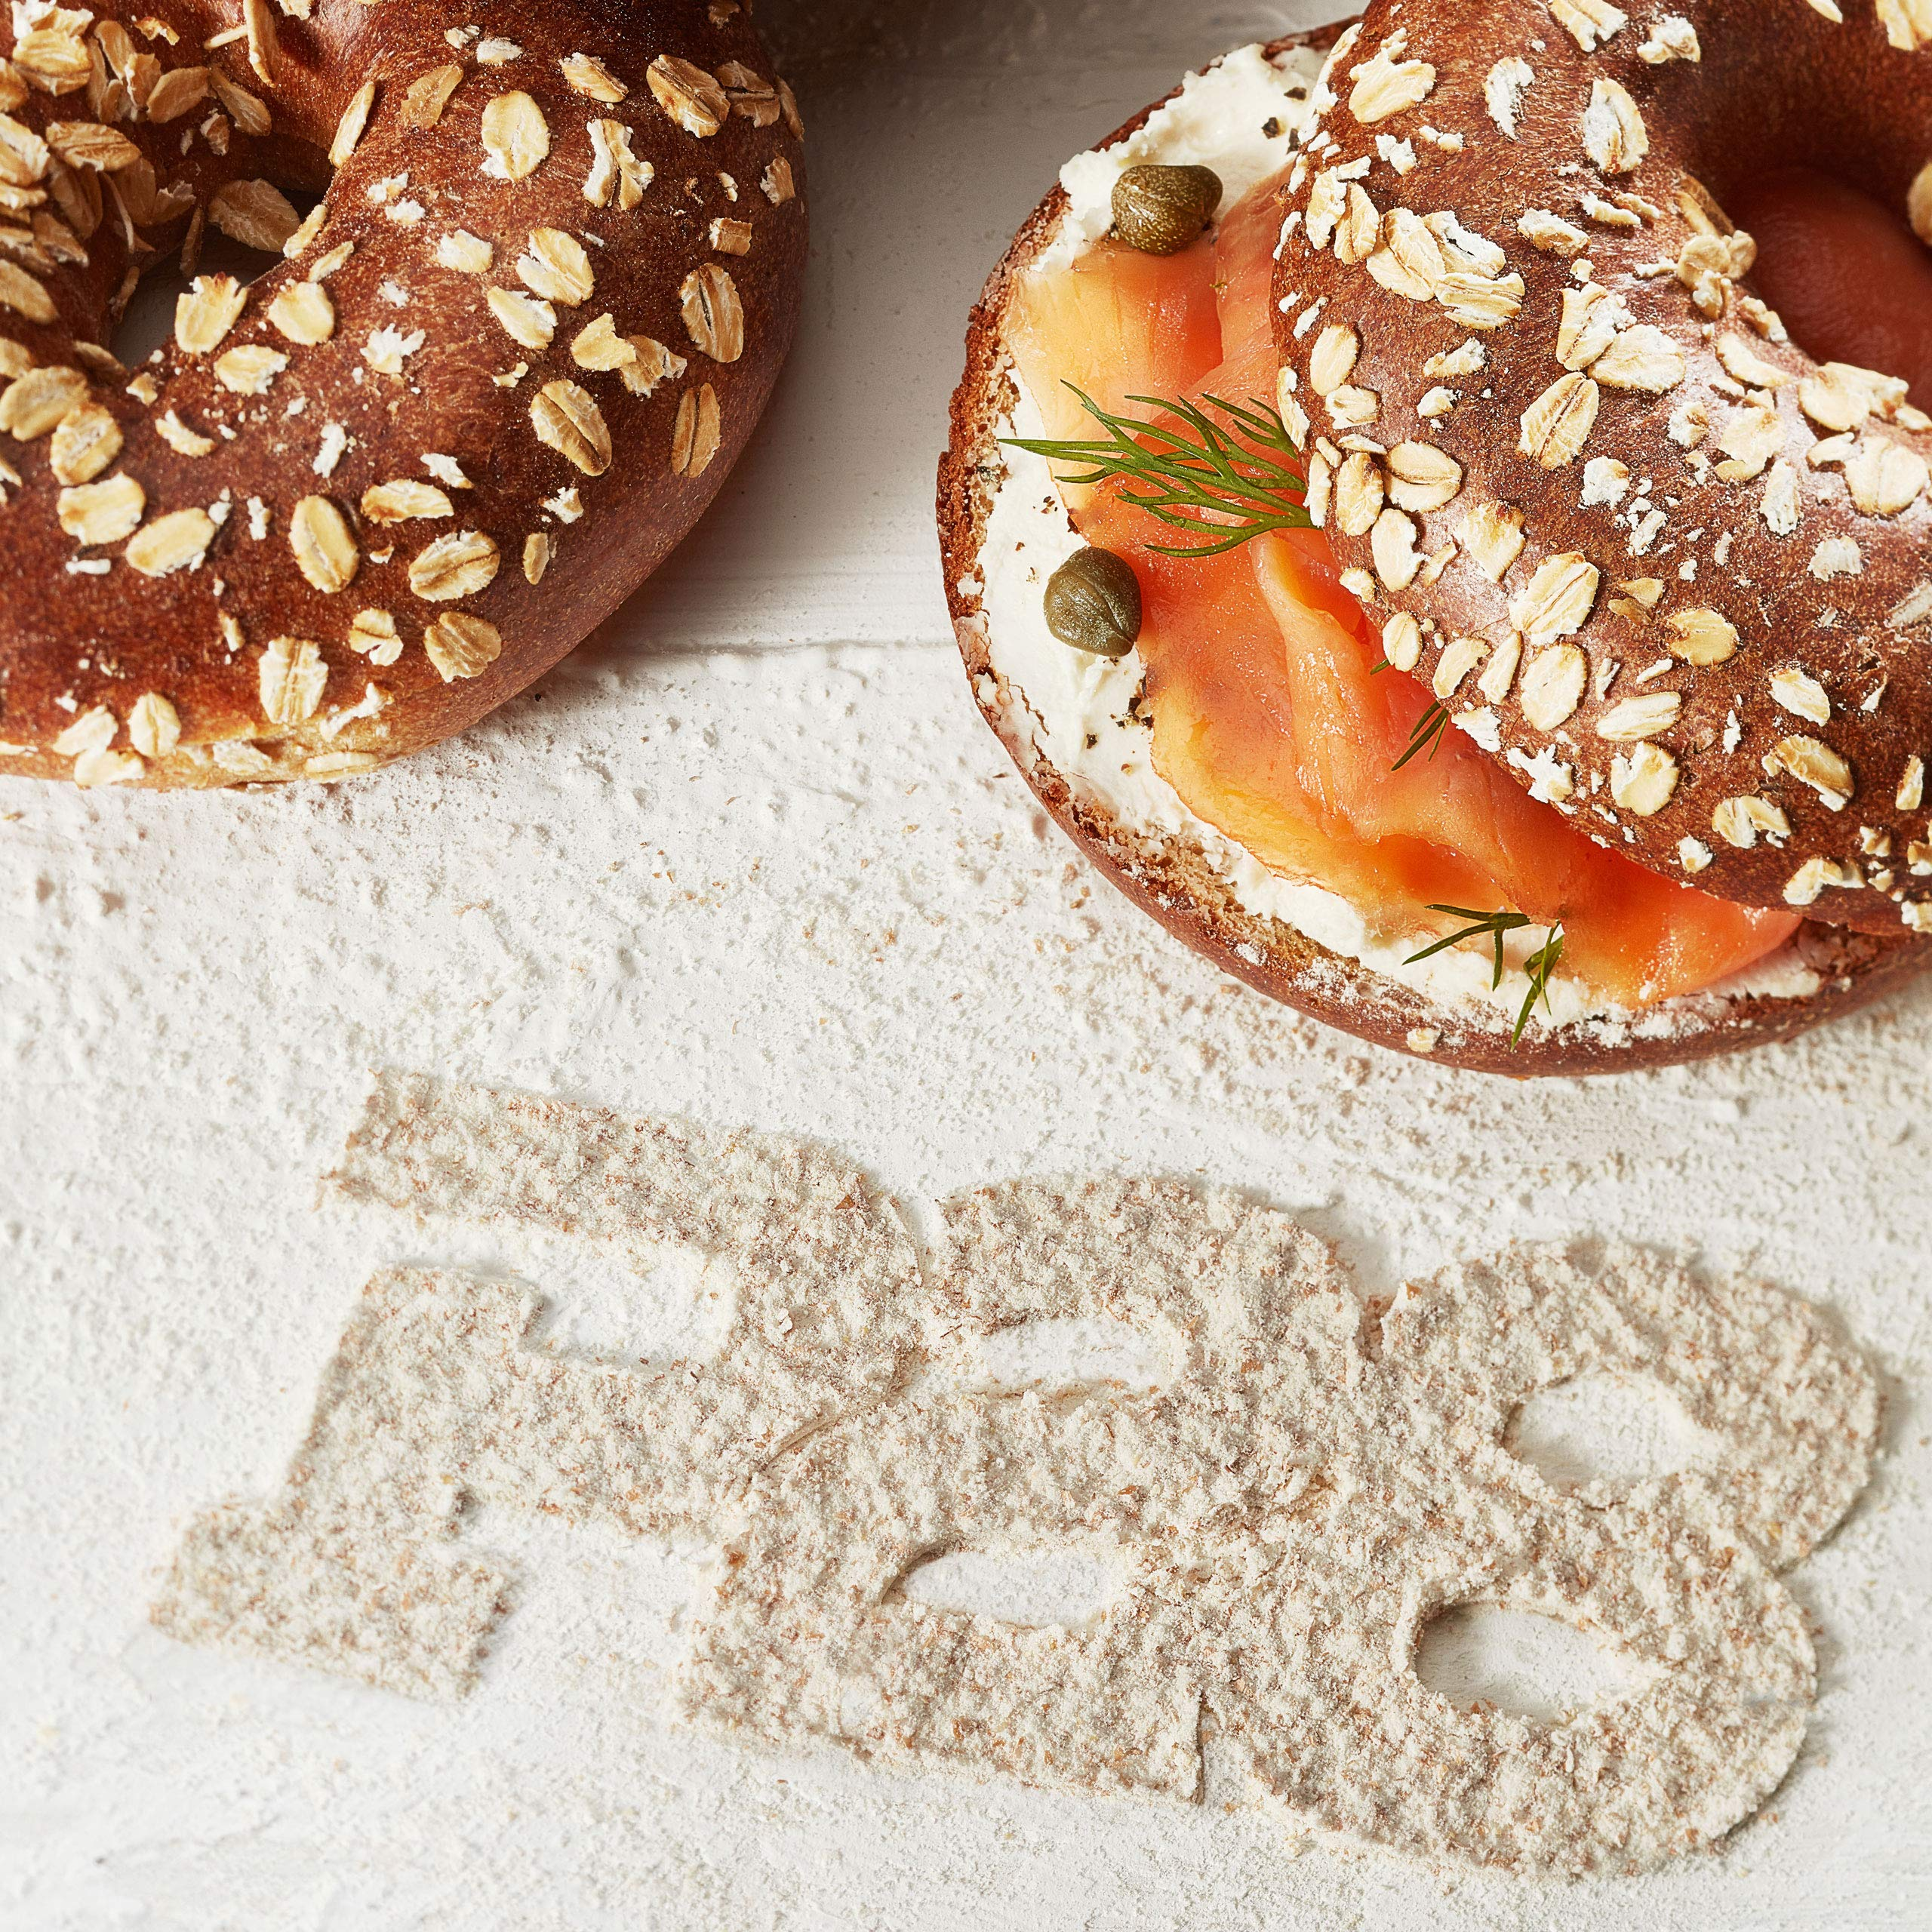 P28 High Protein Bagels, 19 OZ by P28 Foods (Image #6)